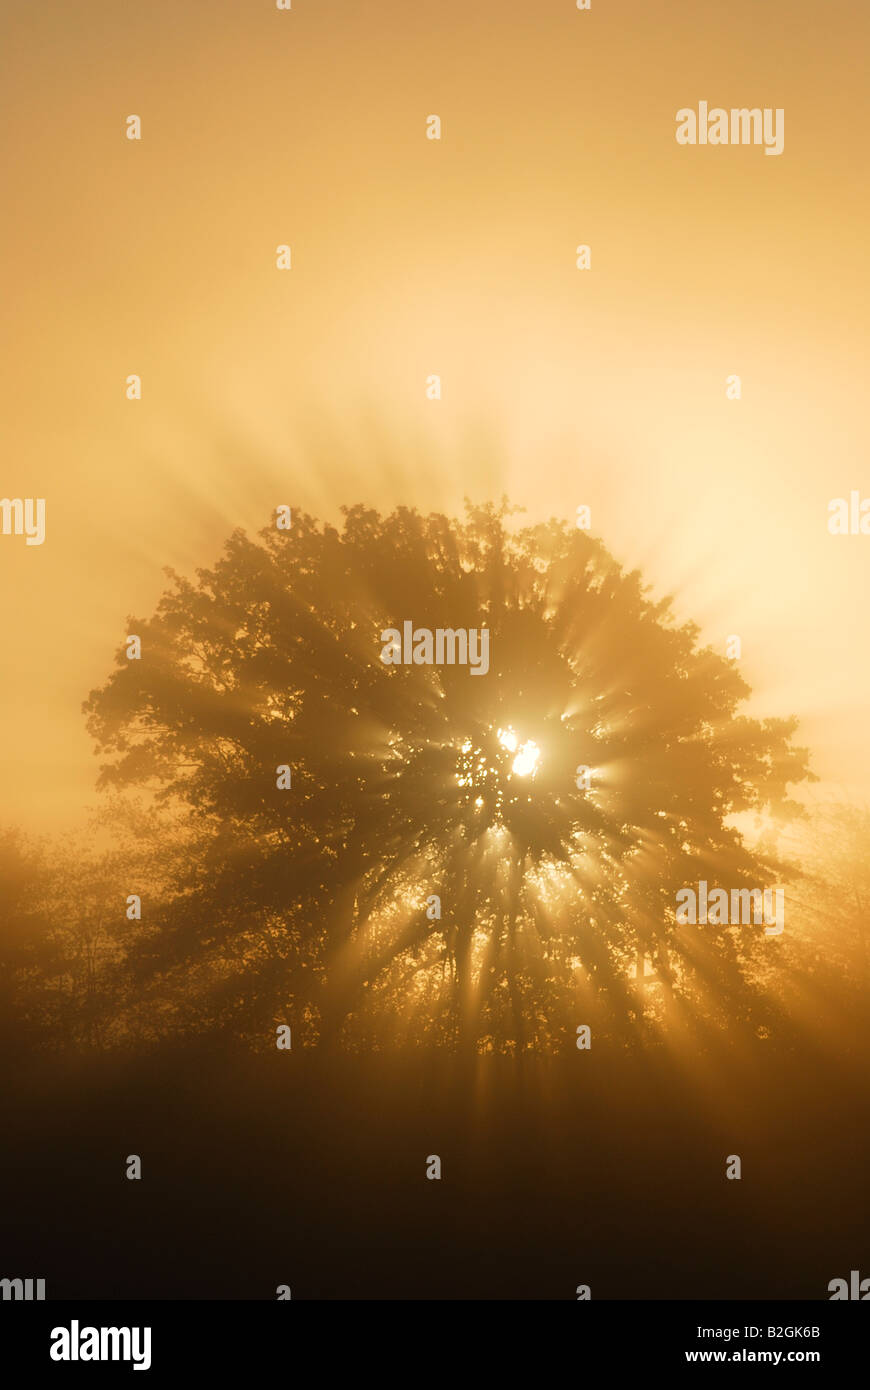 cue state tree shadow silhouette dawn backlight upper bavaria germany - Stock Image